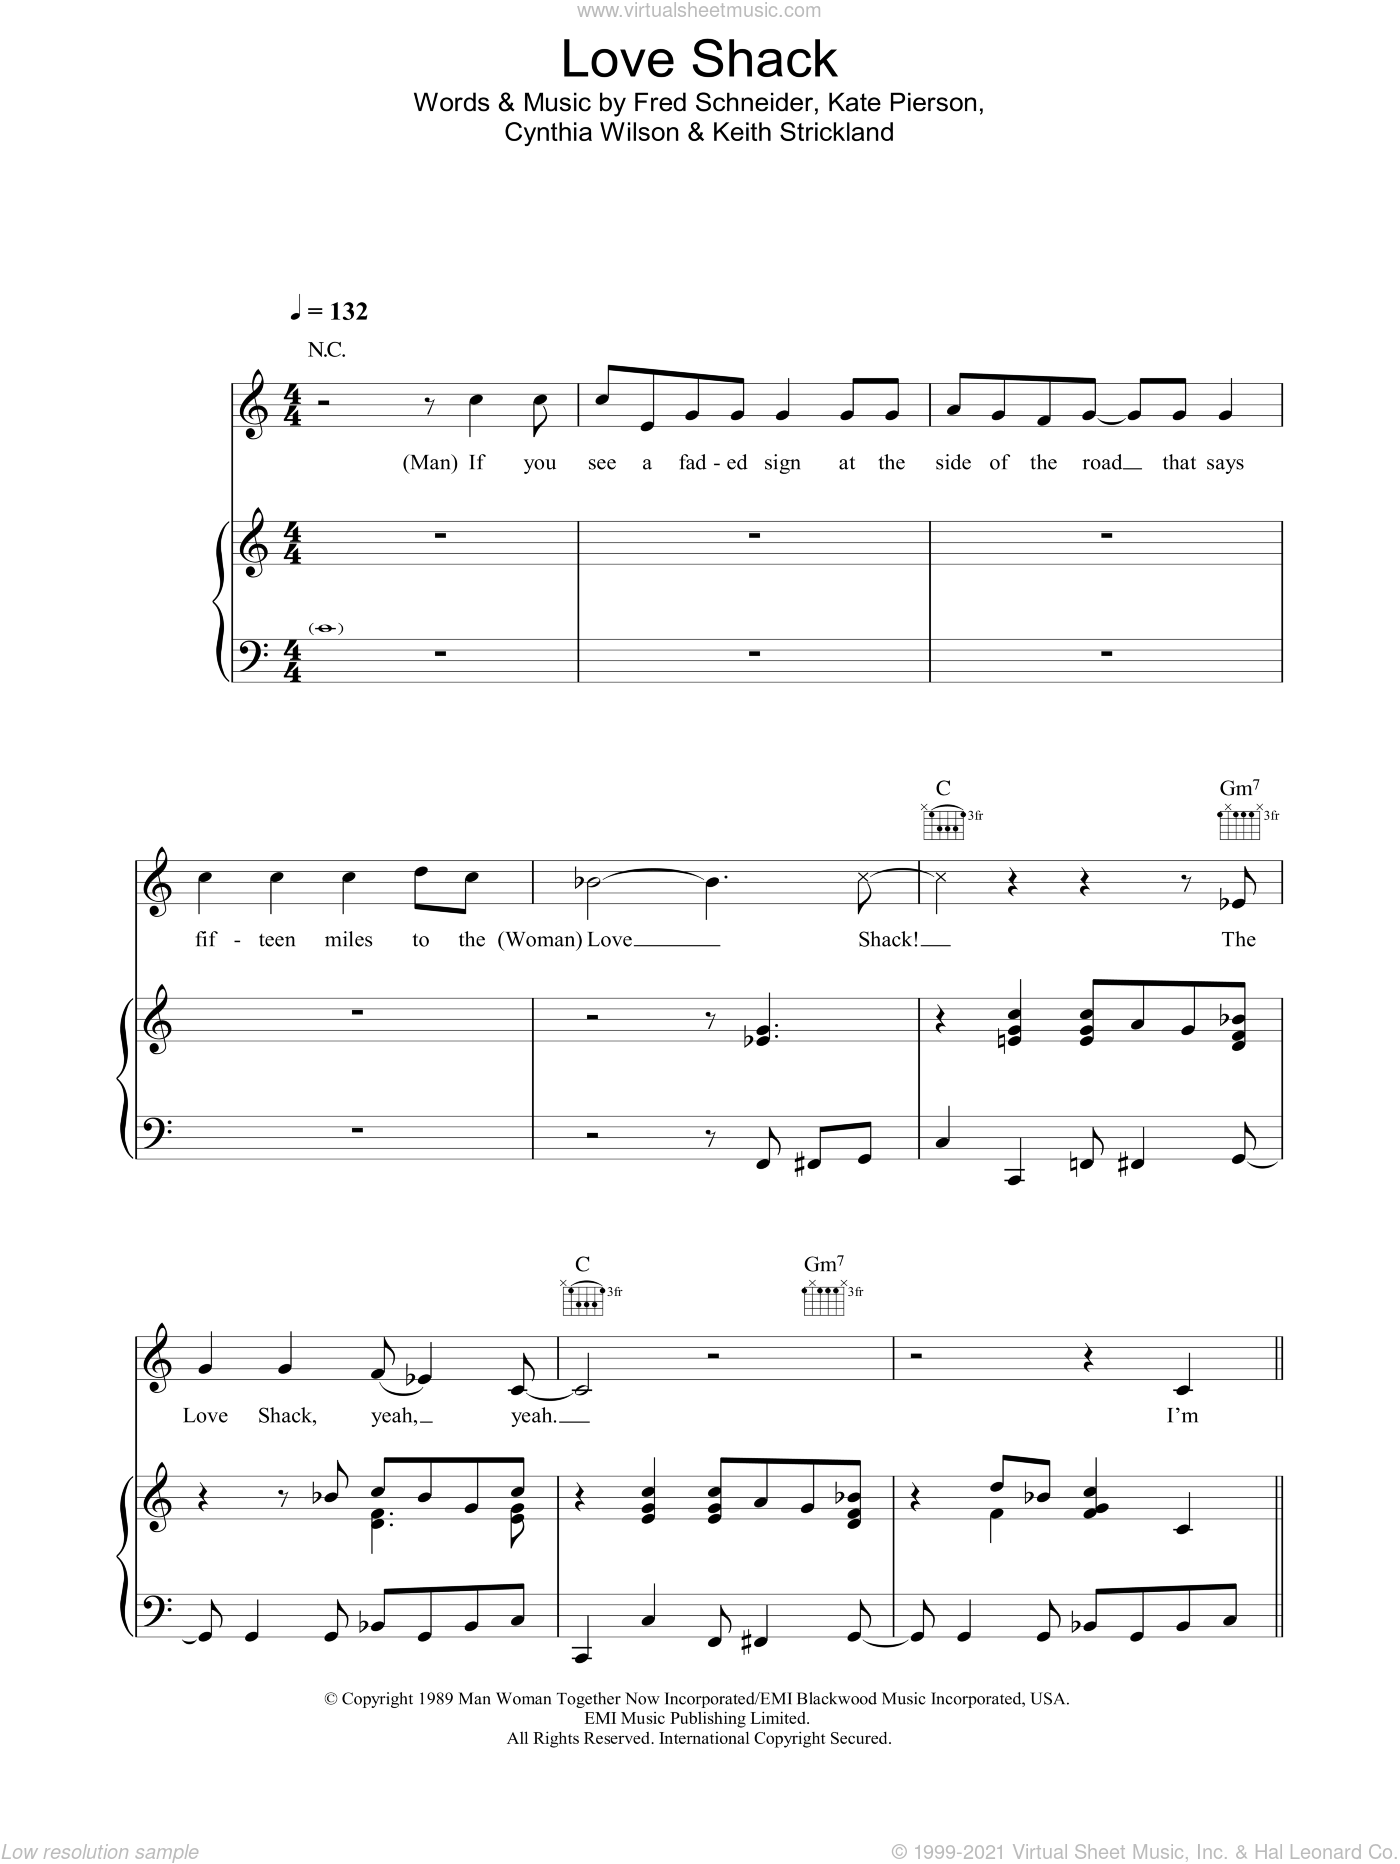 Love Shack sheet music for voice, piano or guitar by Keith Strickland